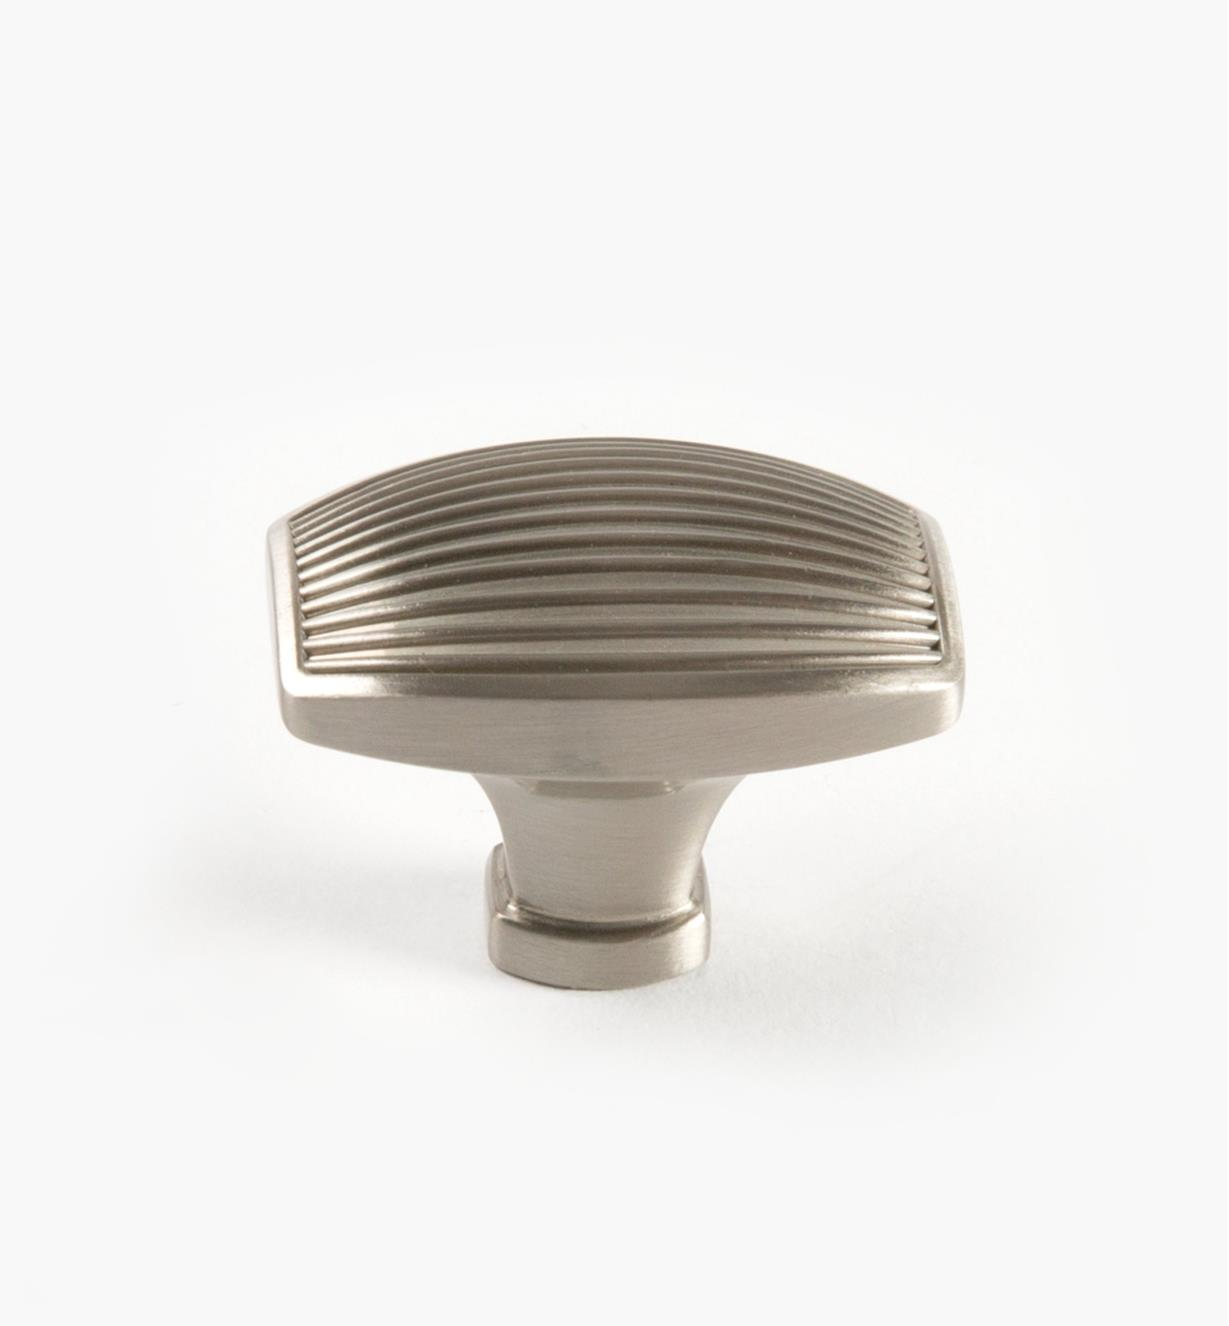 "02A1533 - Seagrass Satin Nickel 1 1/2"" Sm. Knob, each"